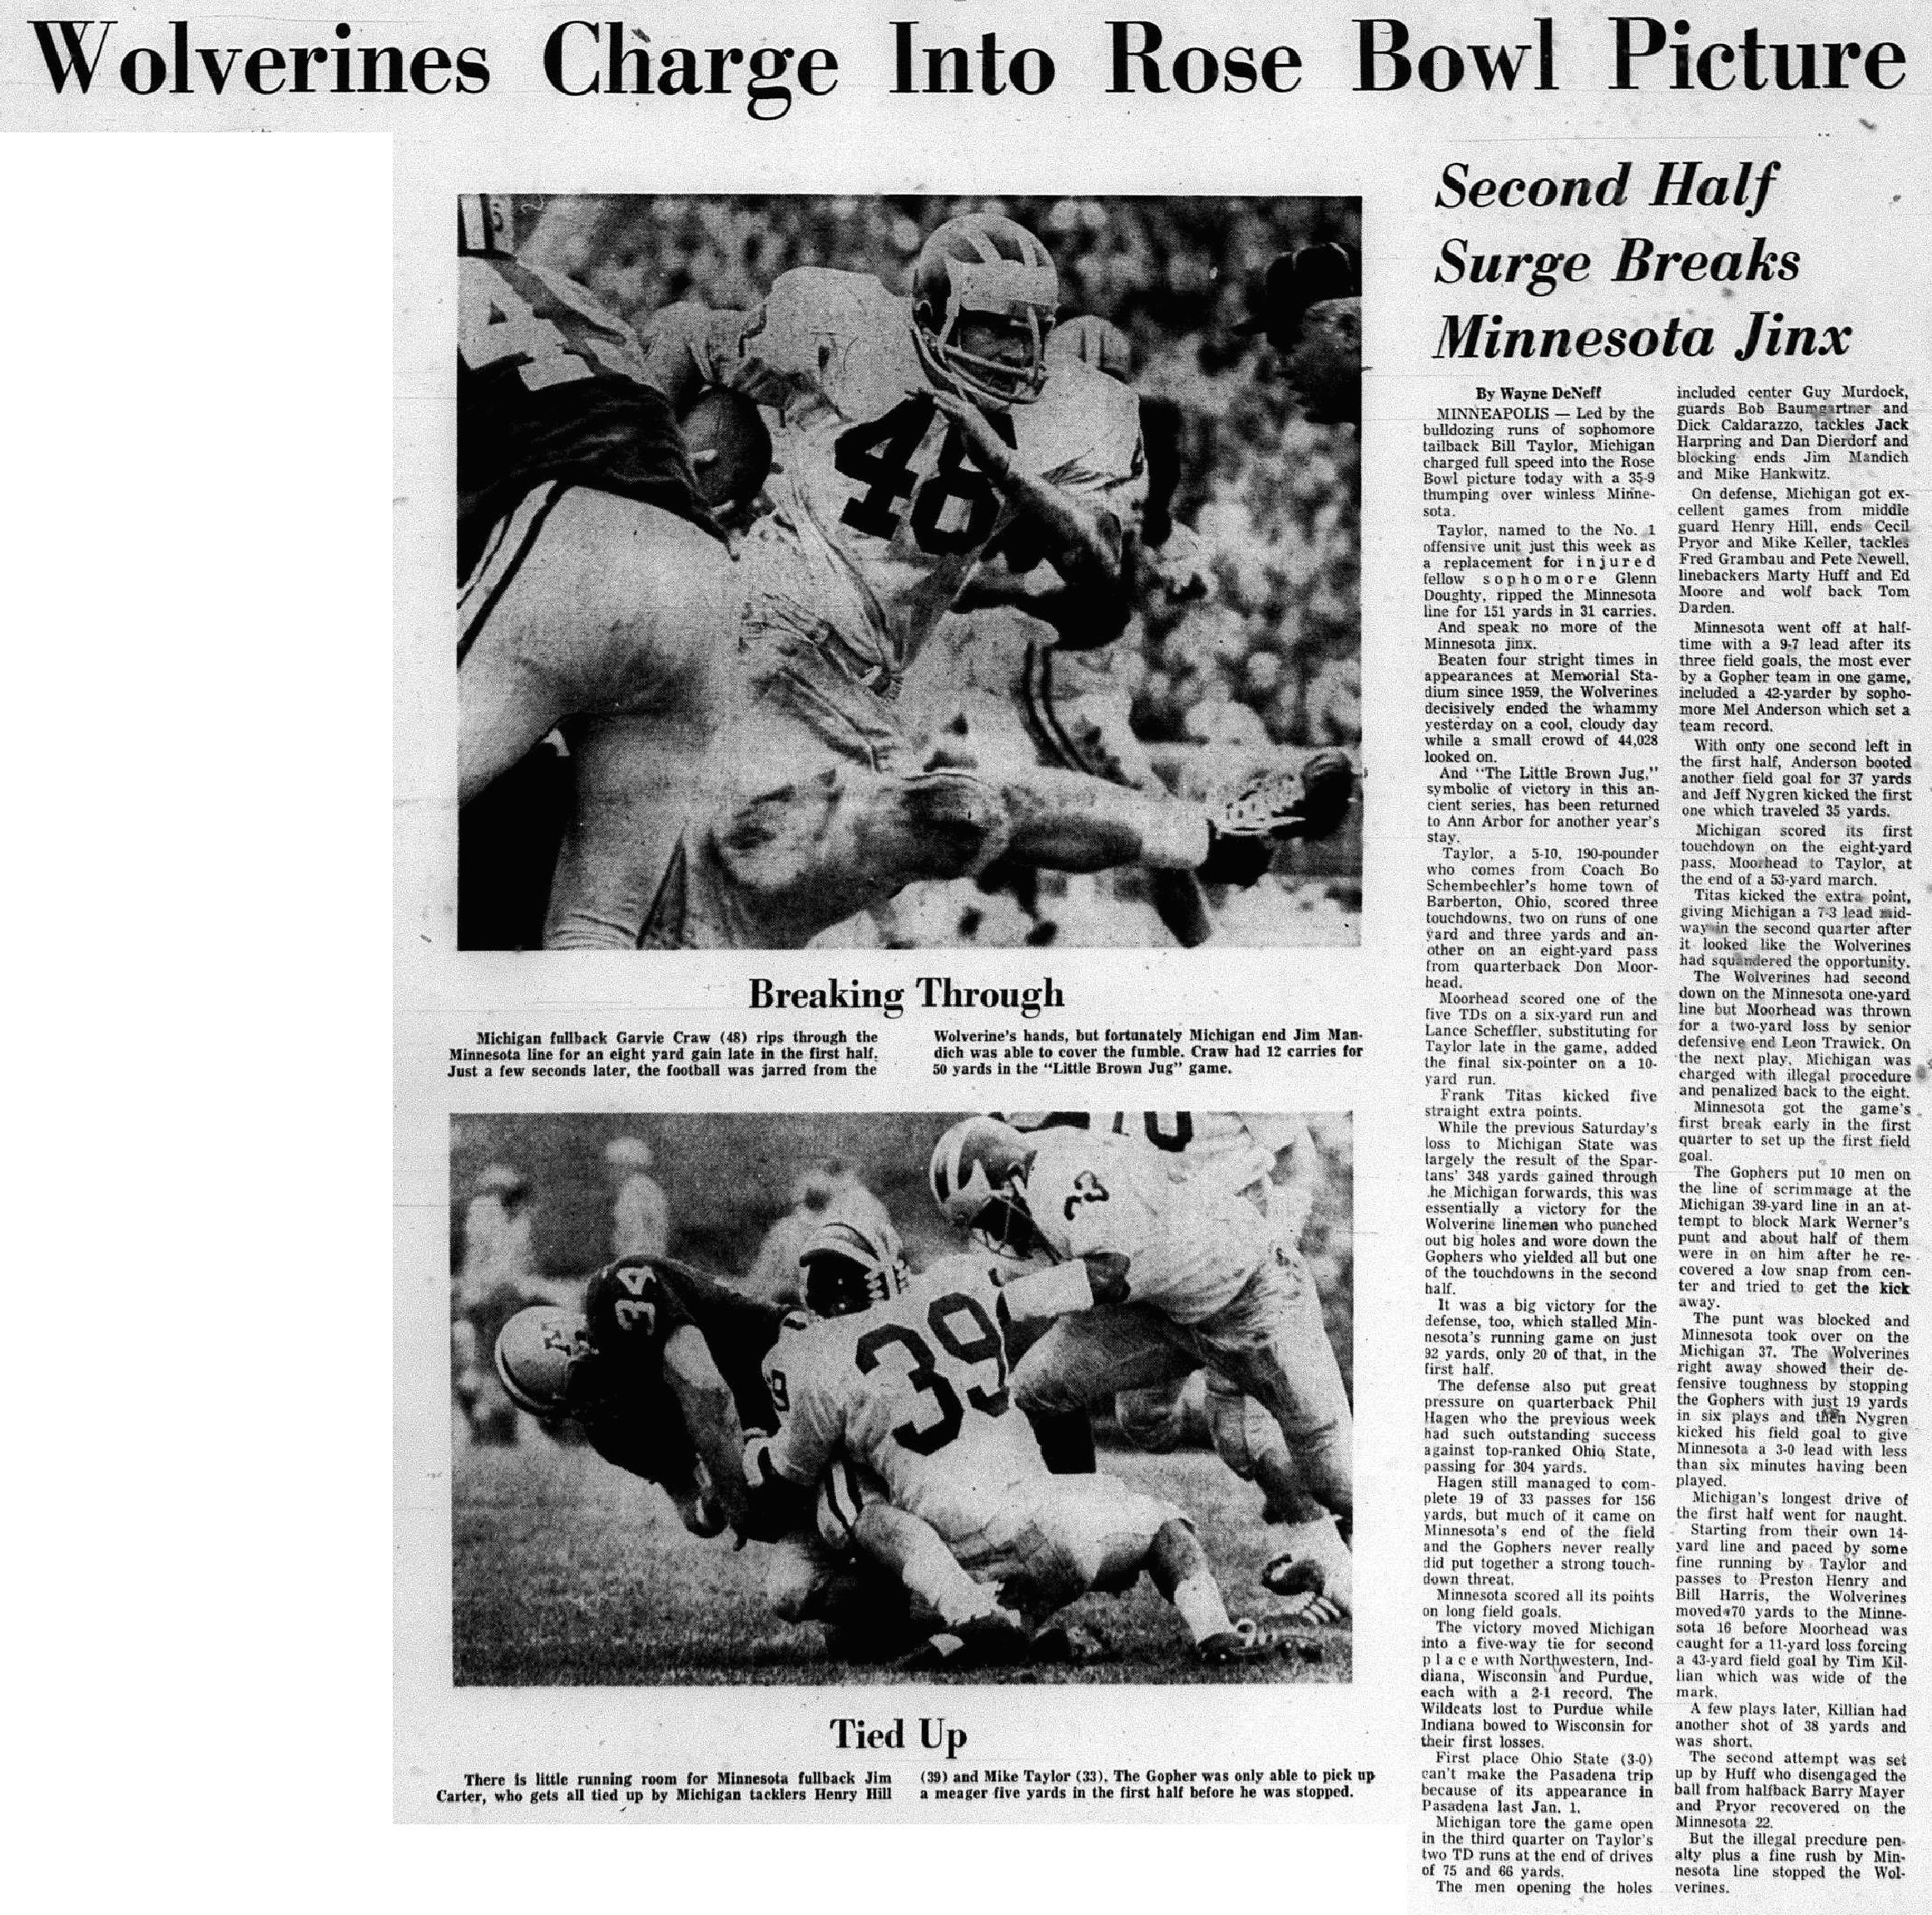 Wolverines Charge Into Rose Bowl Picture image